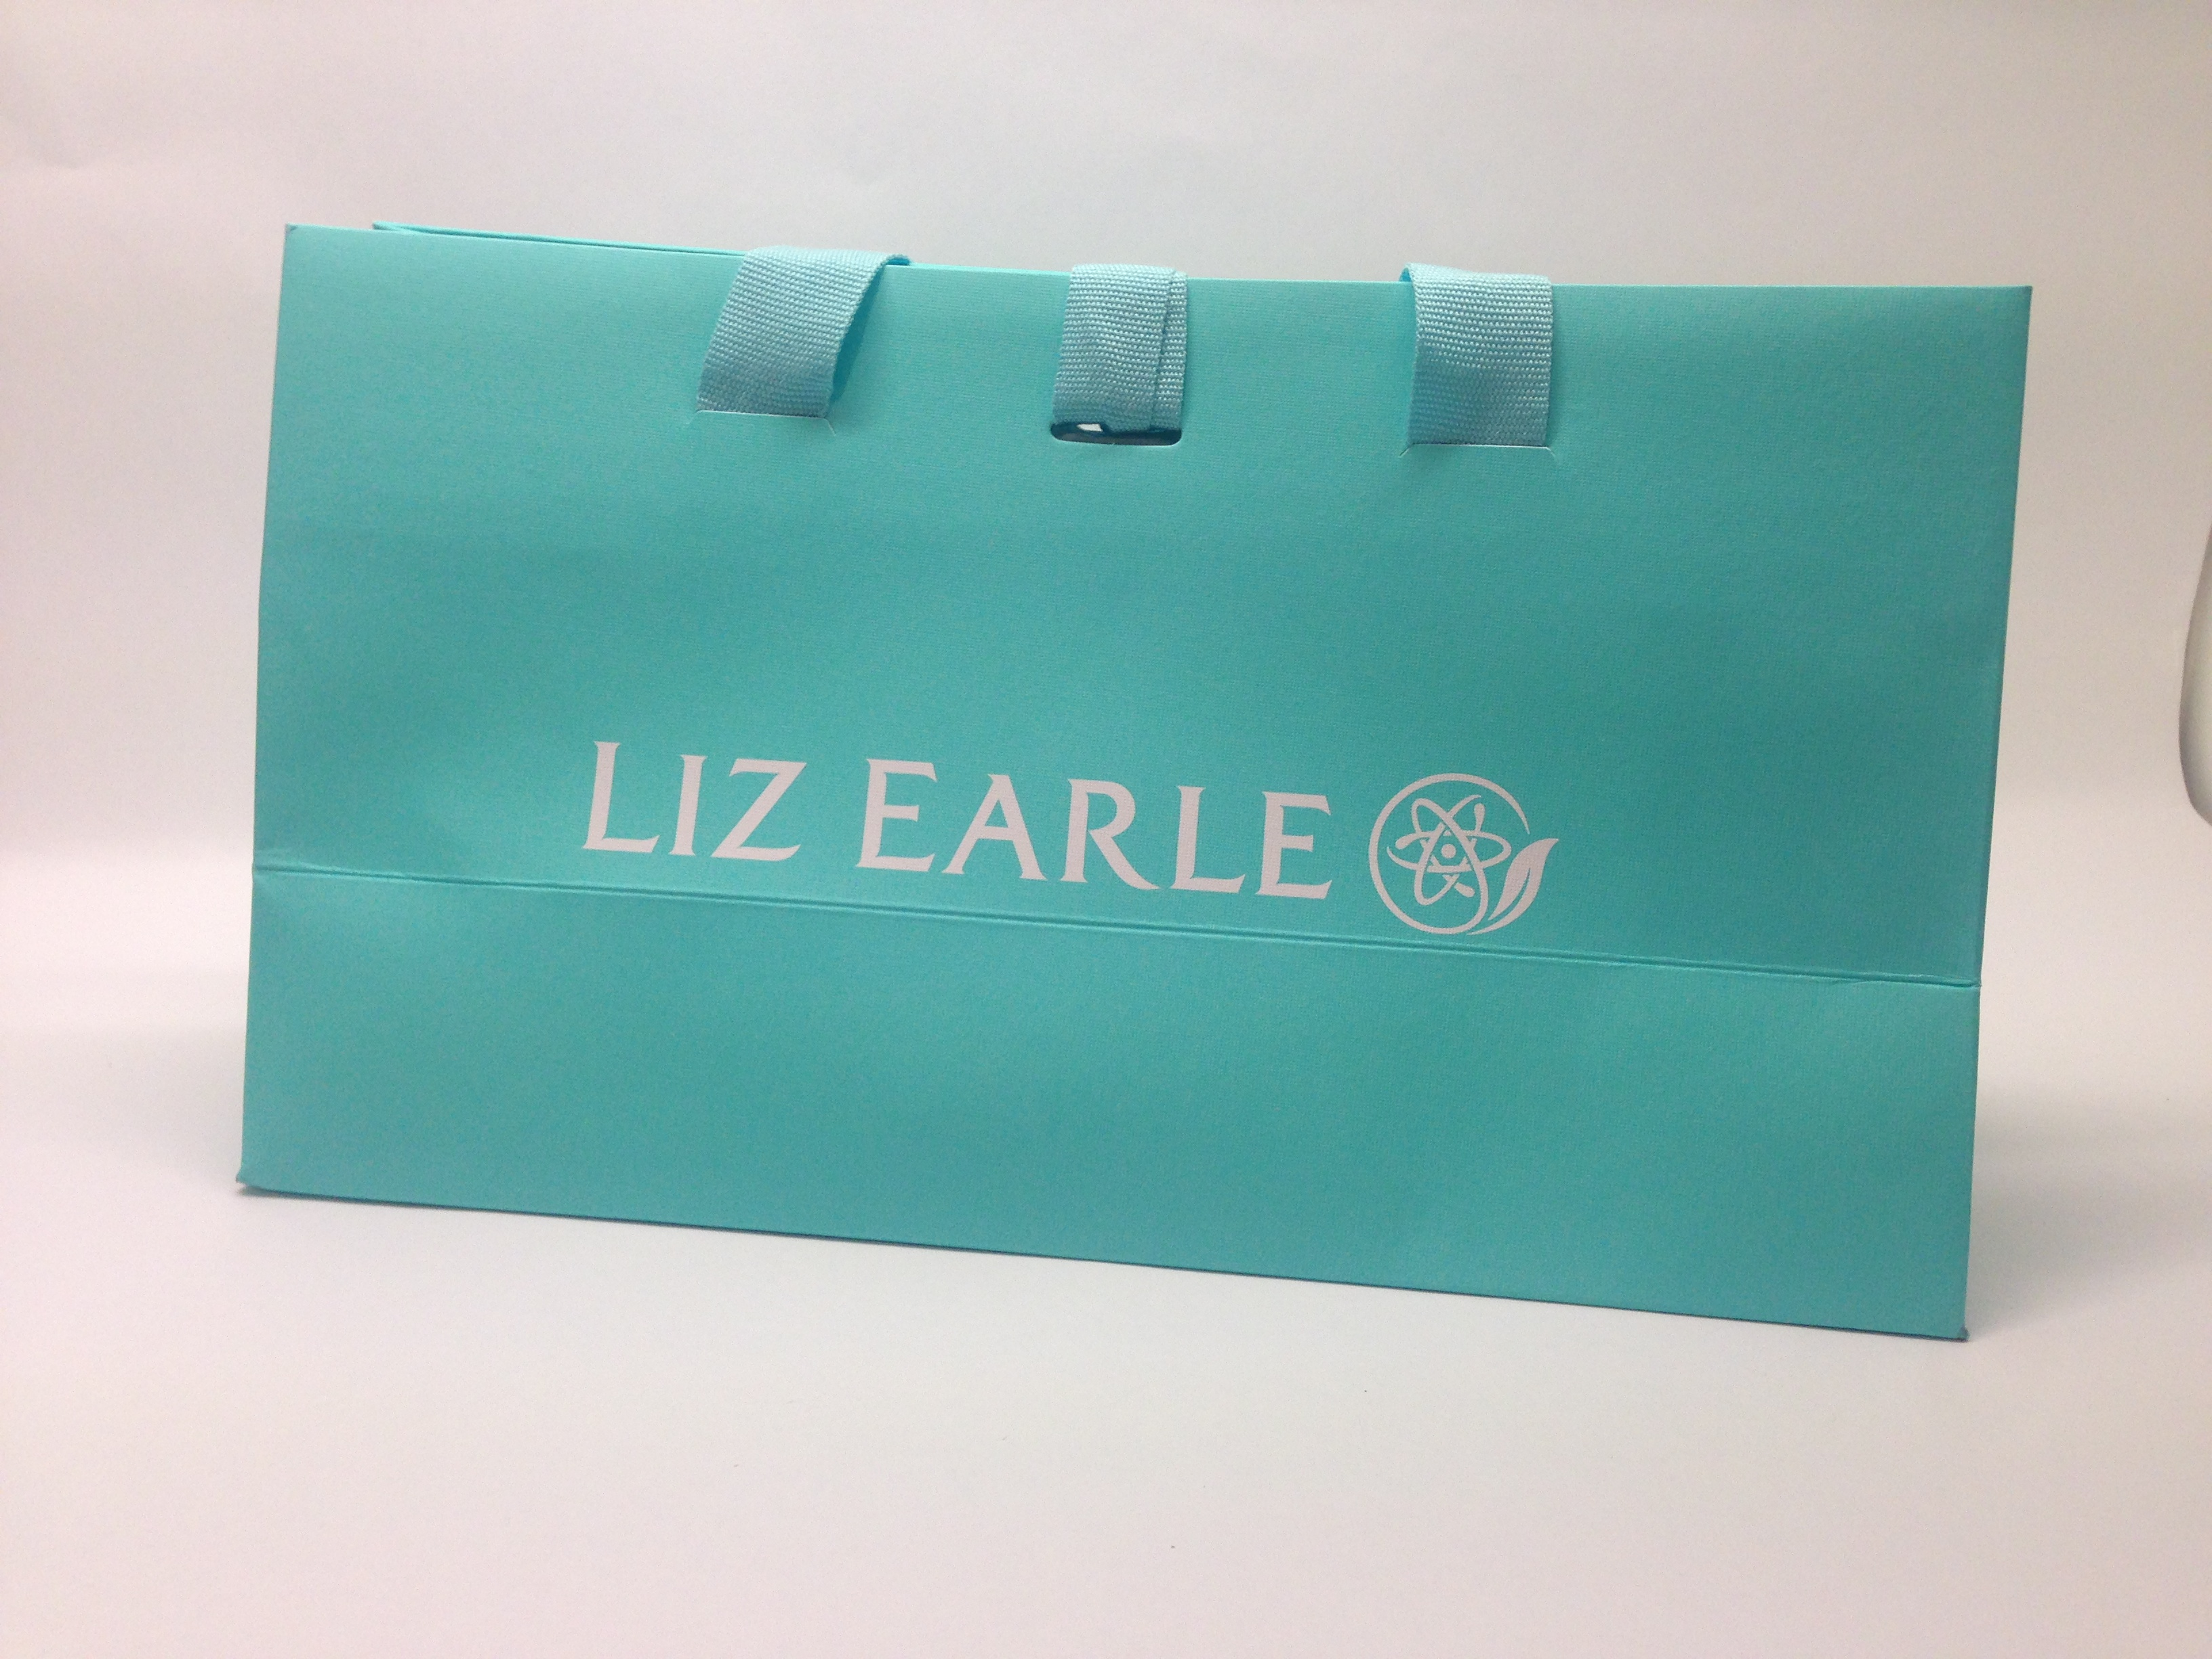 Liz earle gift bag